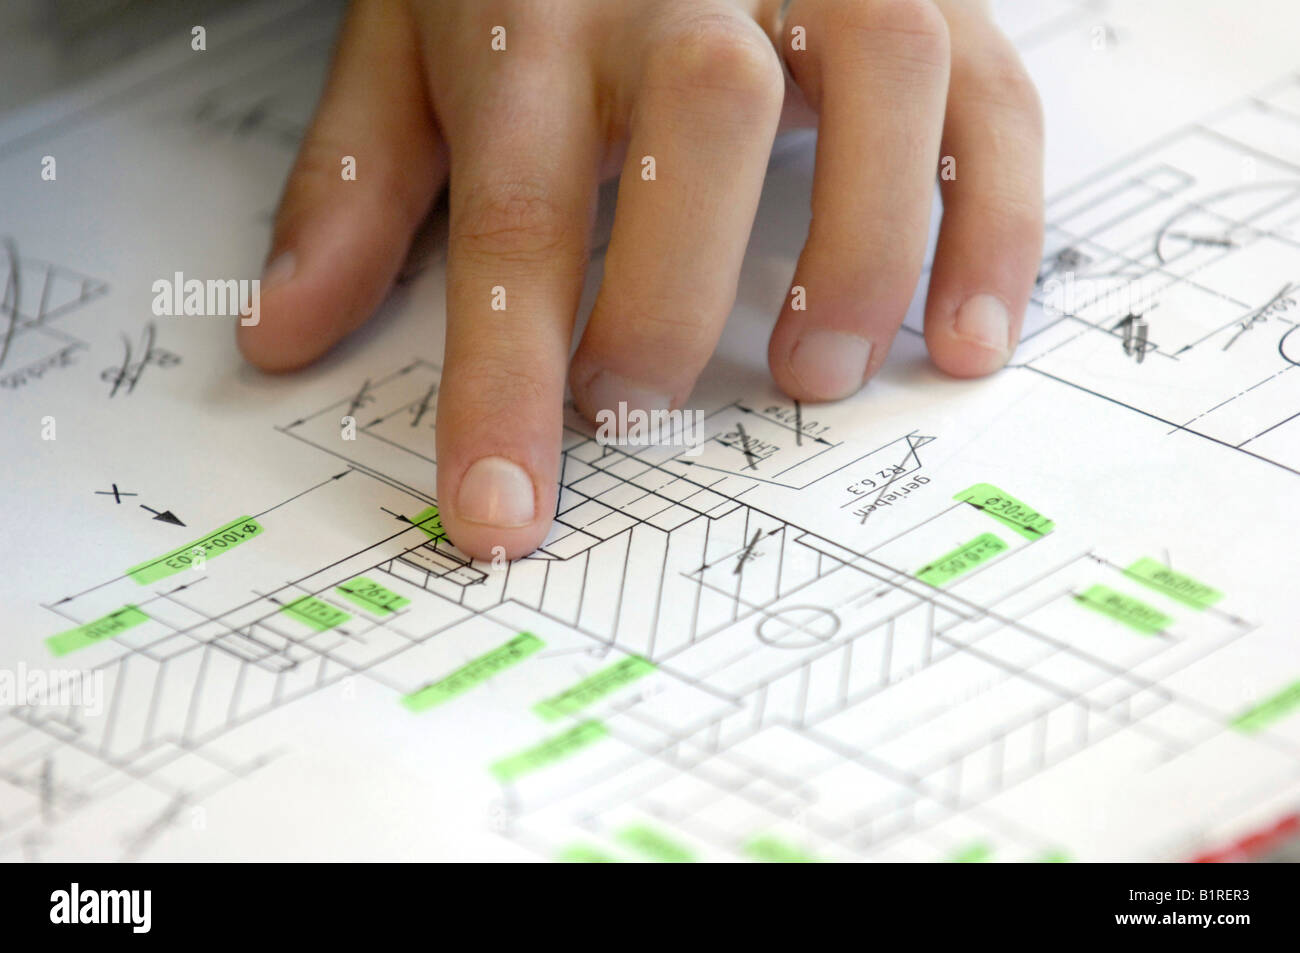 Draftswoman with her hand on a construction plan, blueprints, layout, Heidenheim, Baden-Wuerttemberg, Germany, Europe - Stock Image